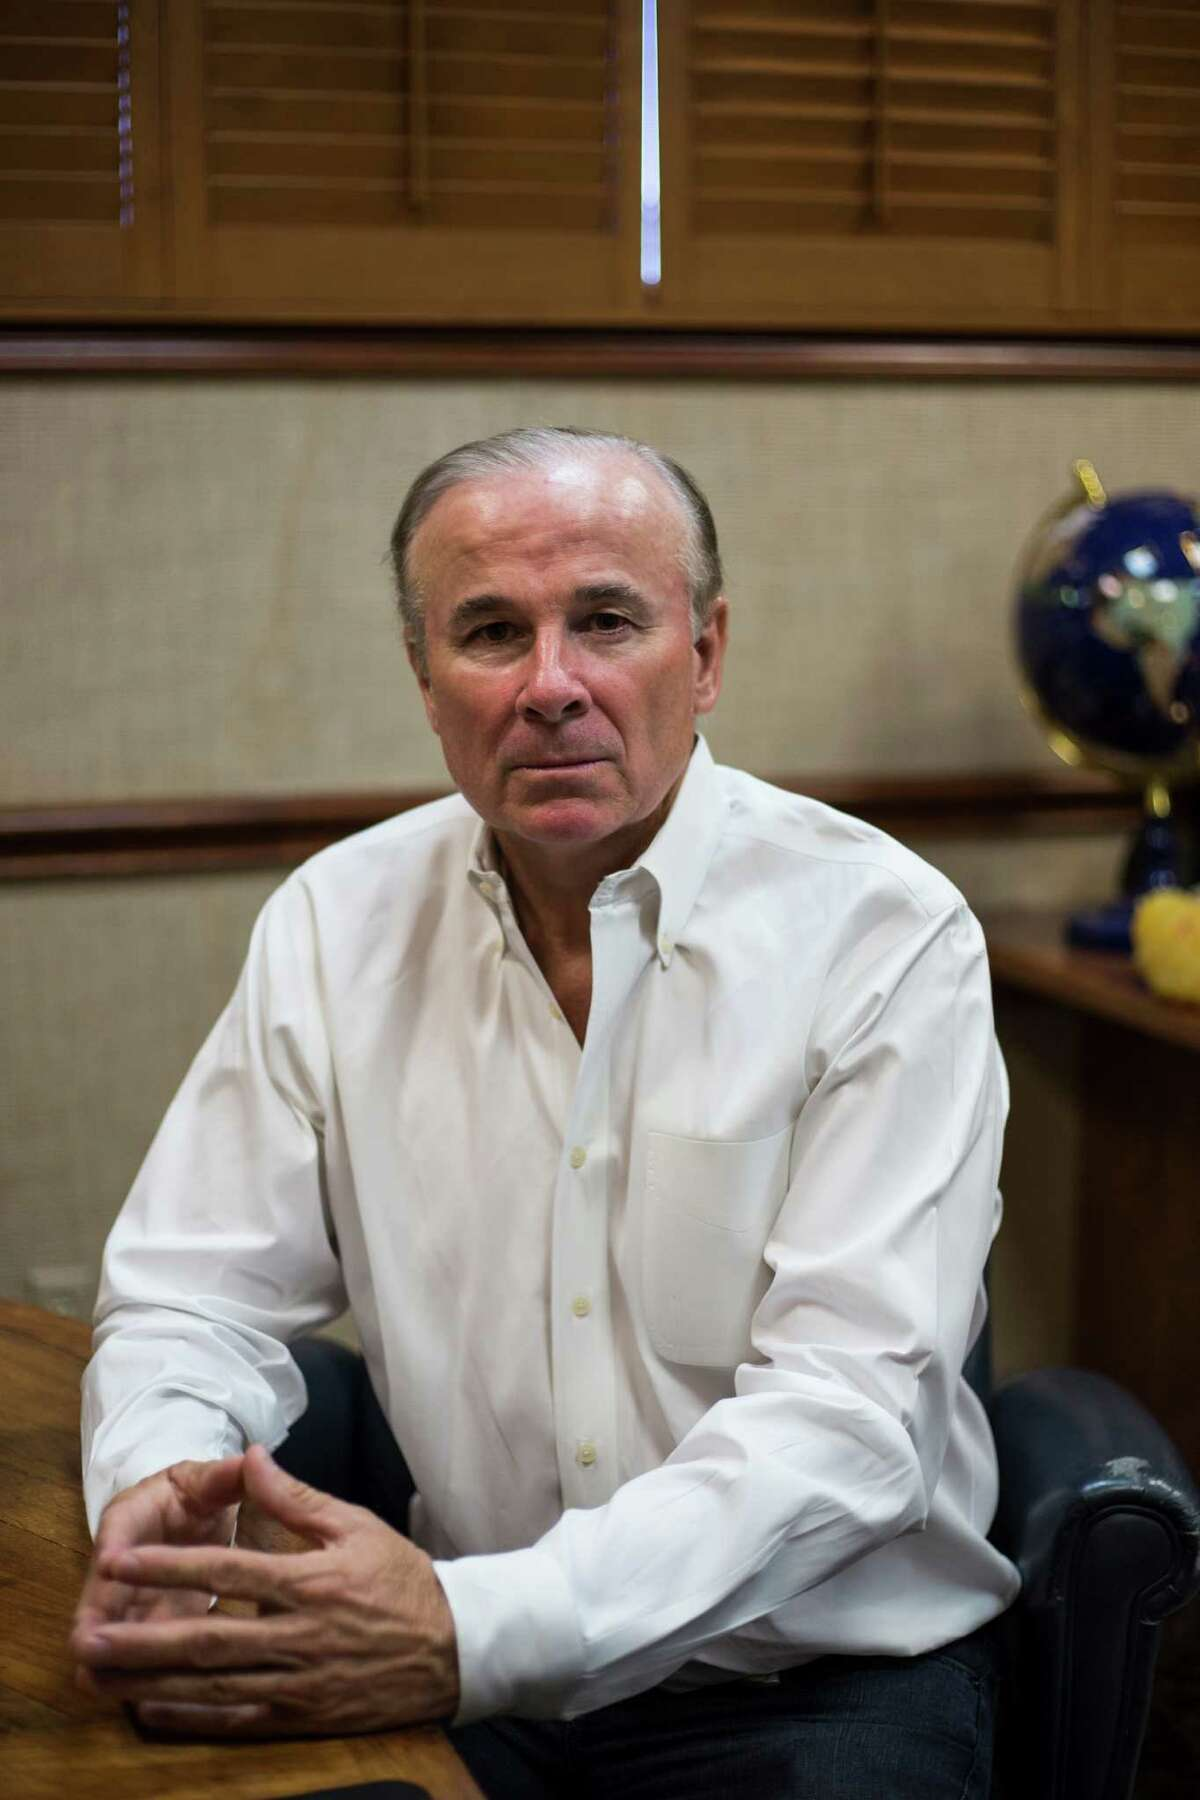 President of Five Star Cleaners Richard Thum at his office in San Antonio on Friday, August 12, 2016. Thum is one of many who lost more than $1 million in investments with a frac sand company, FourWinds Logistics, who is now accused of defrauding investors.